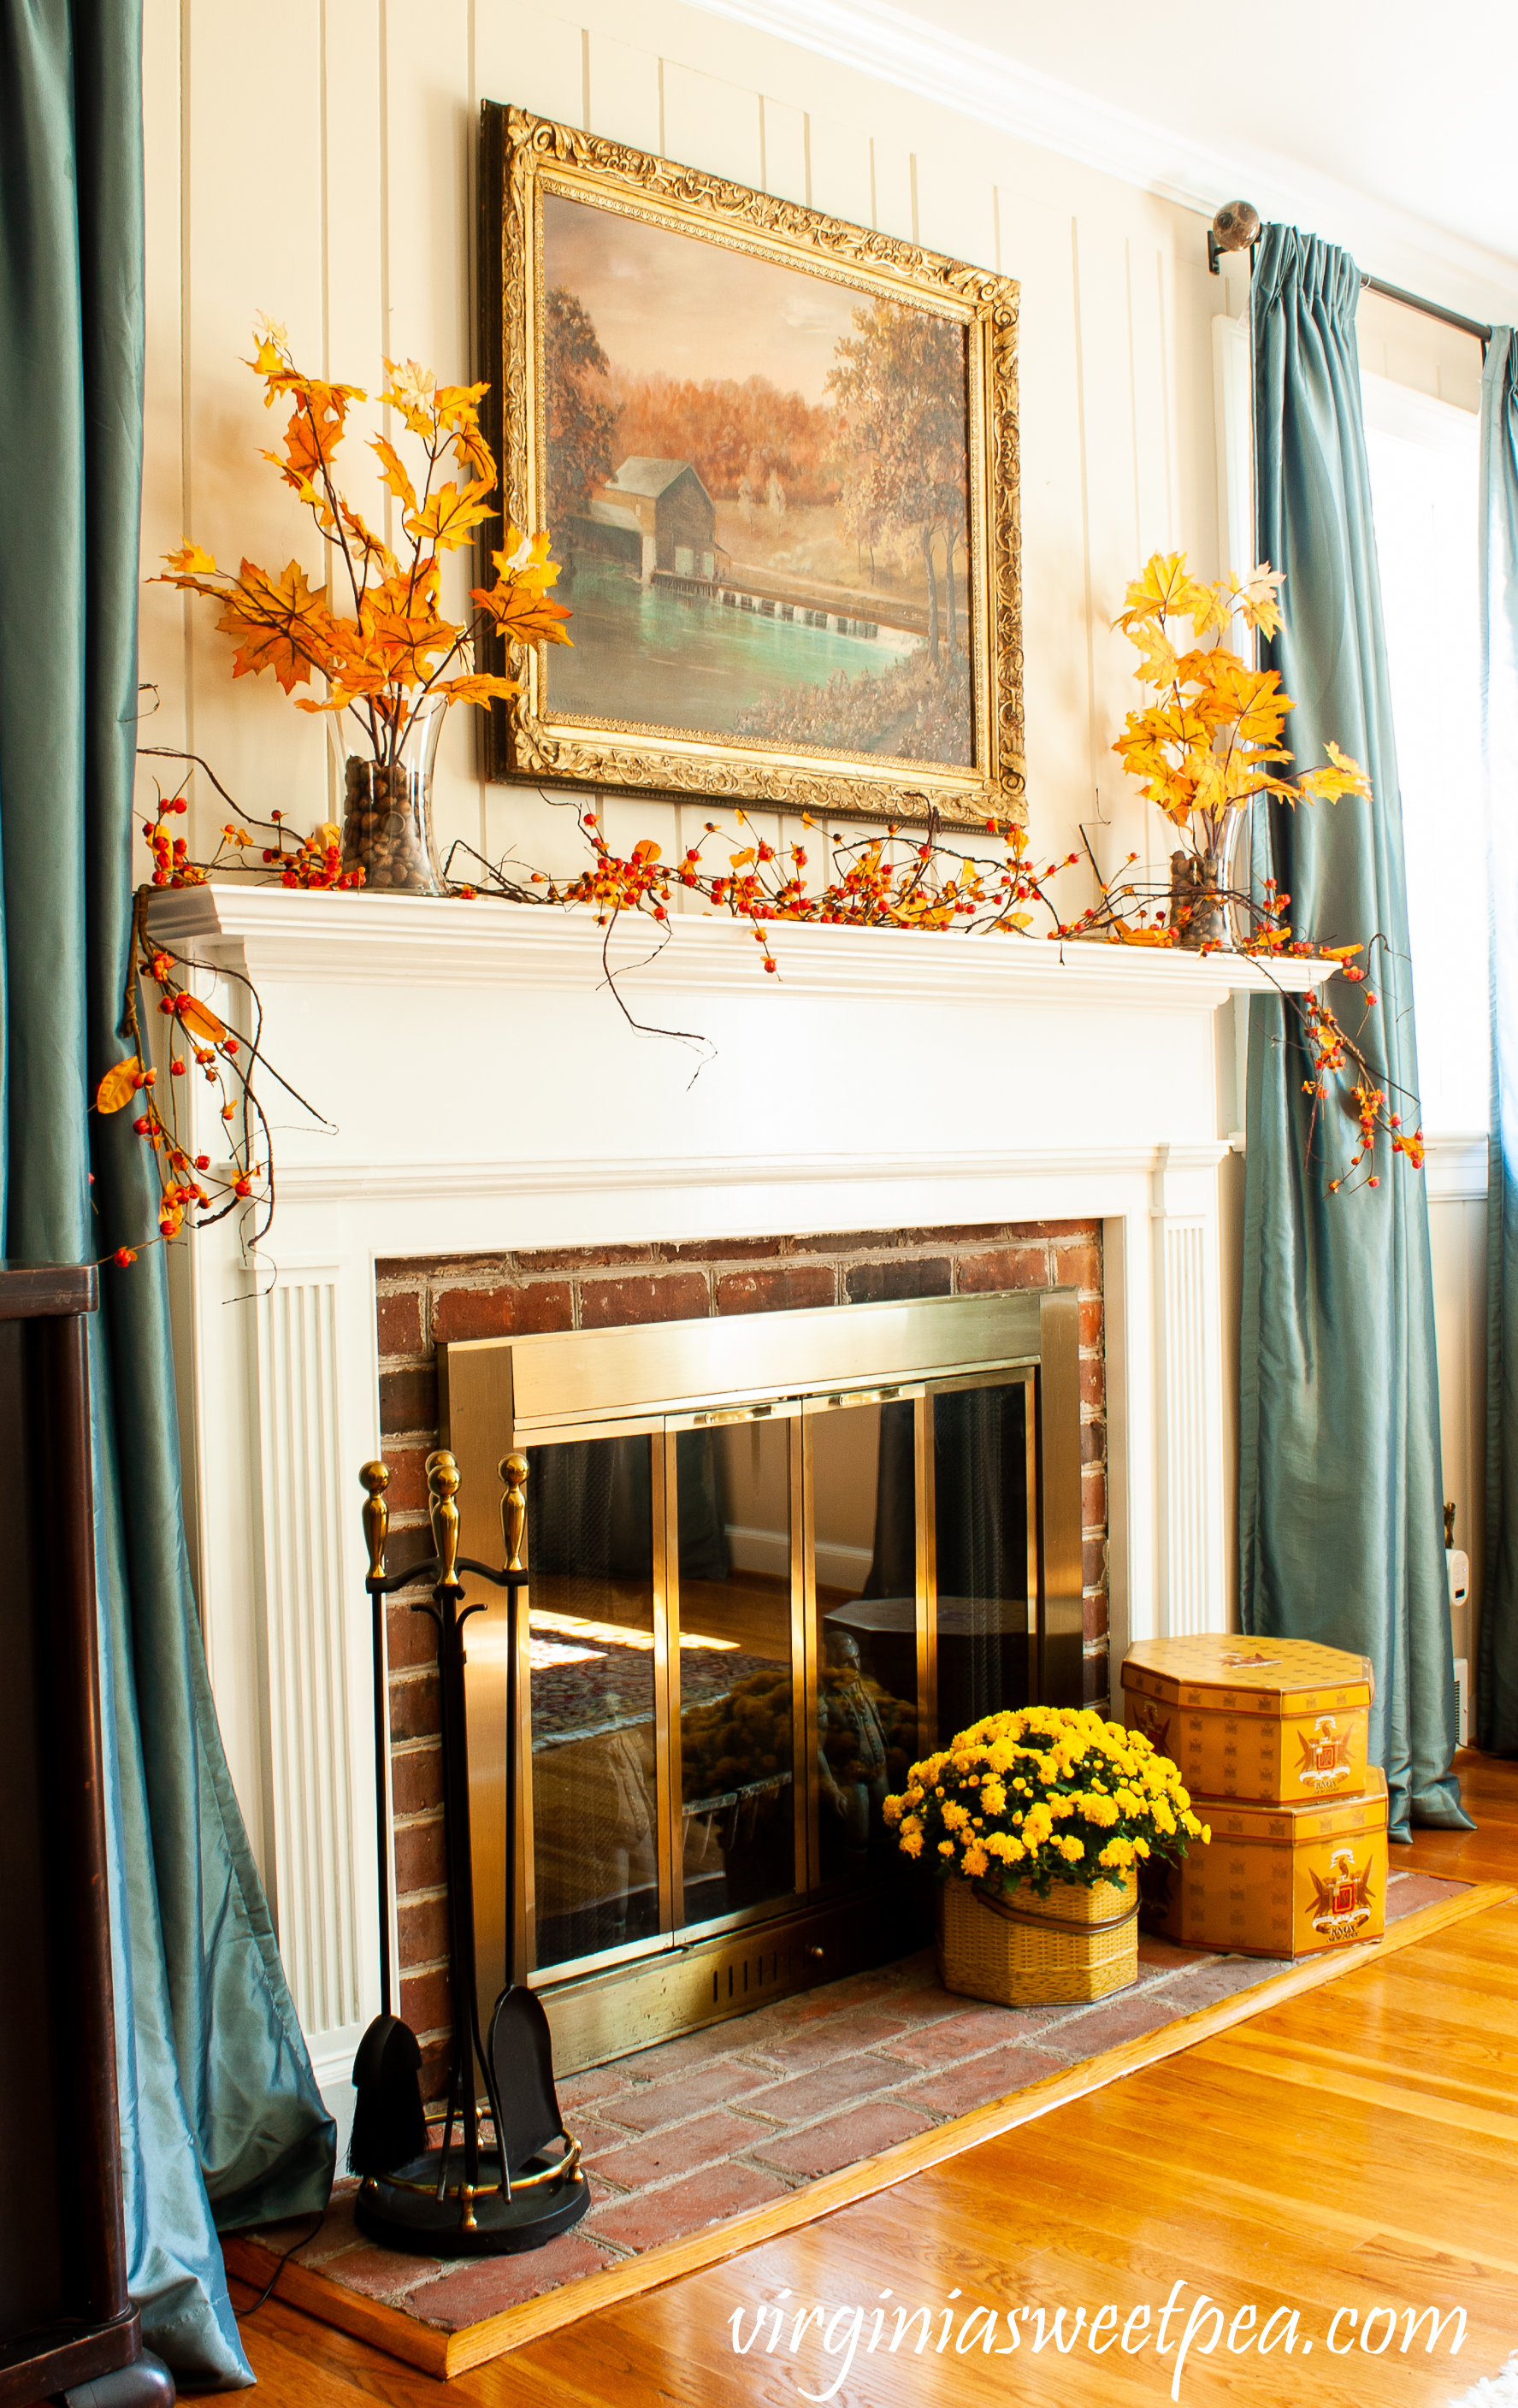 Traditional Fall Mantel - A mantel decorated with a painting of a mill in Sussex County, NJ along with fall foliage, bittersweet, and mums.